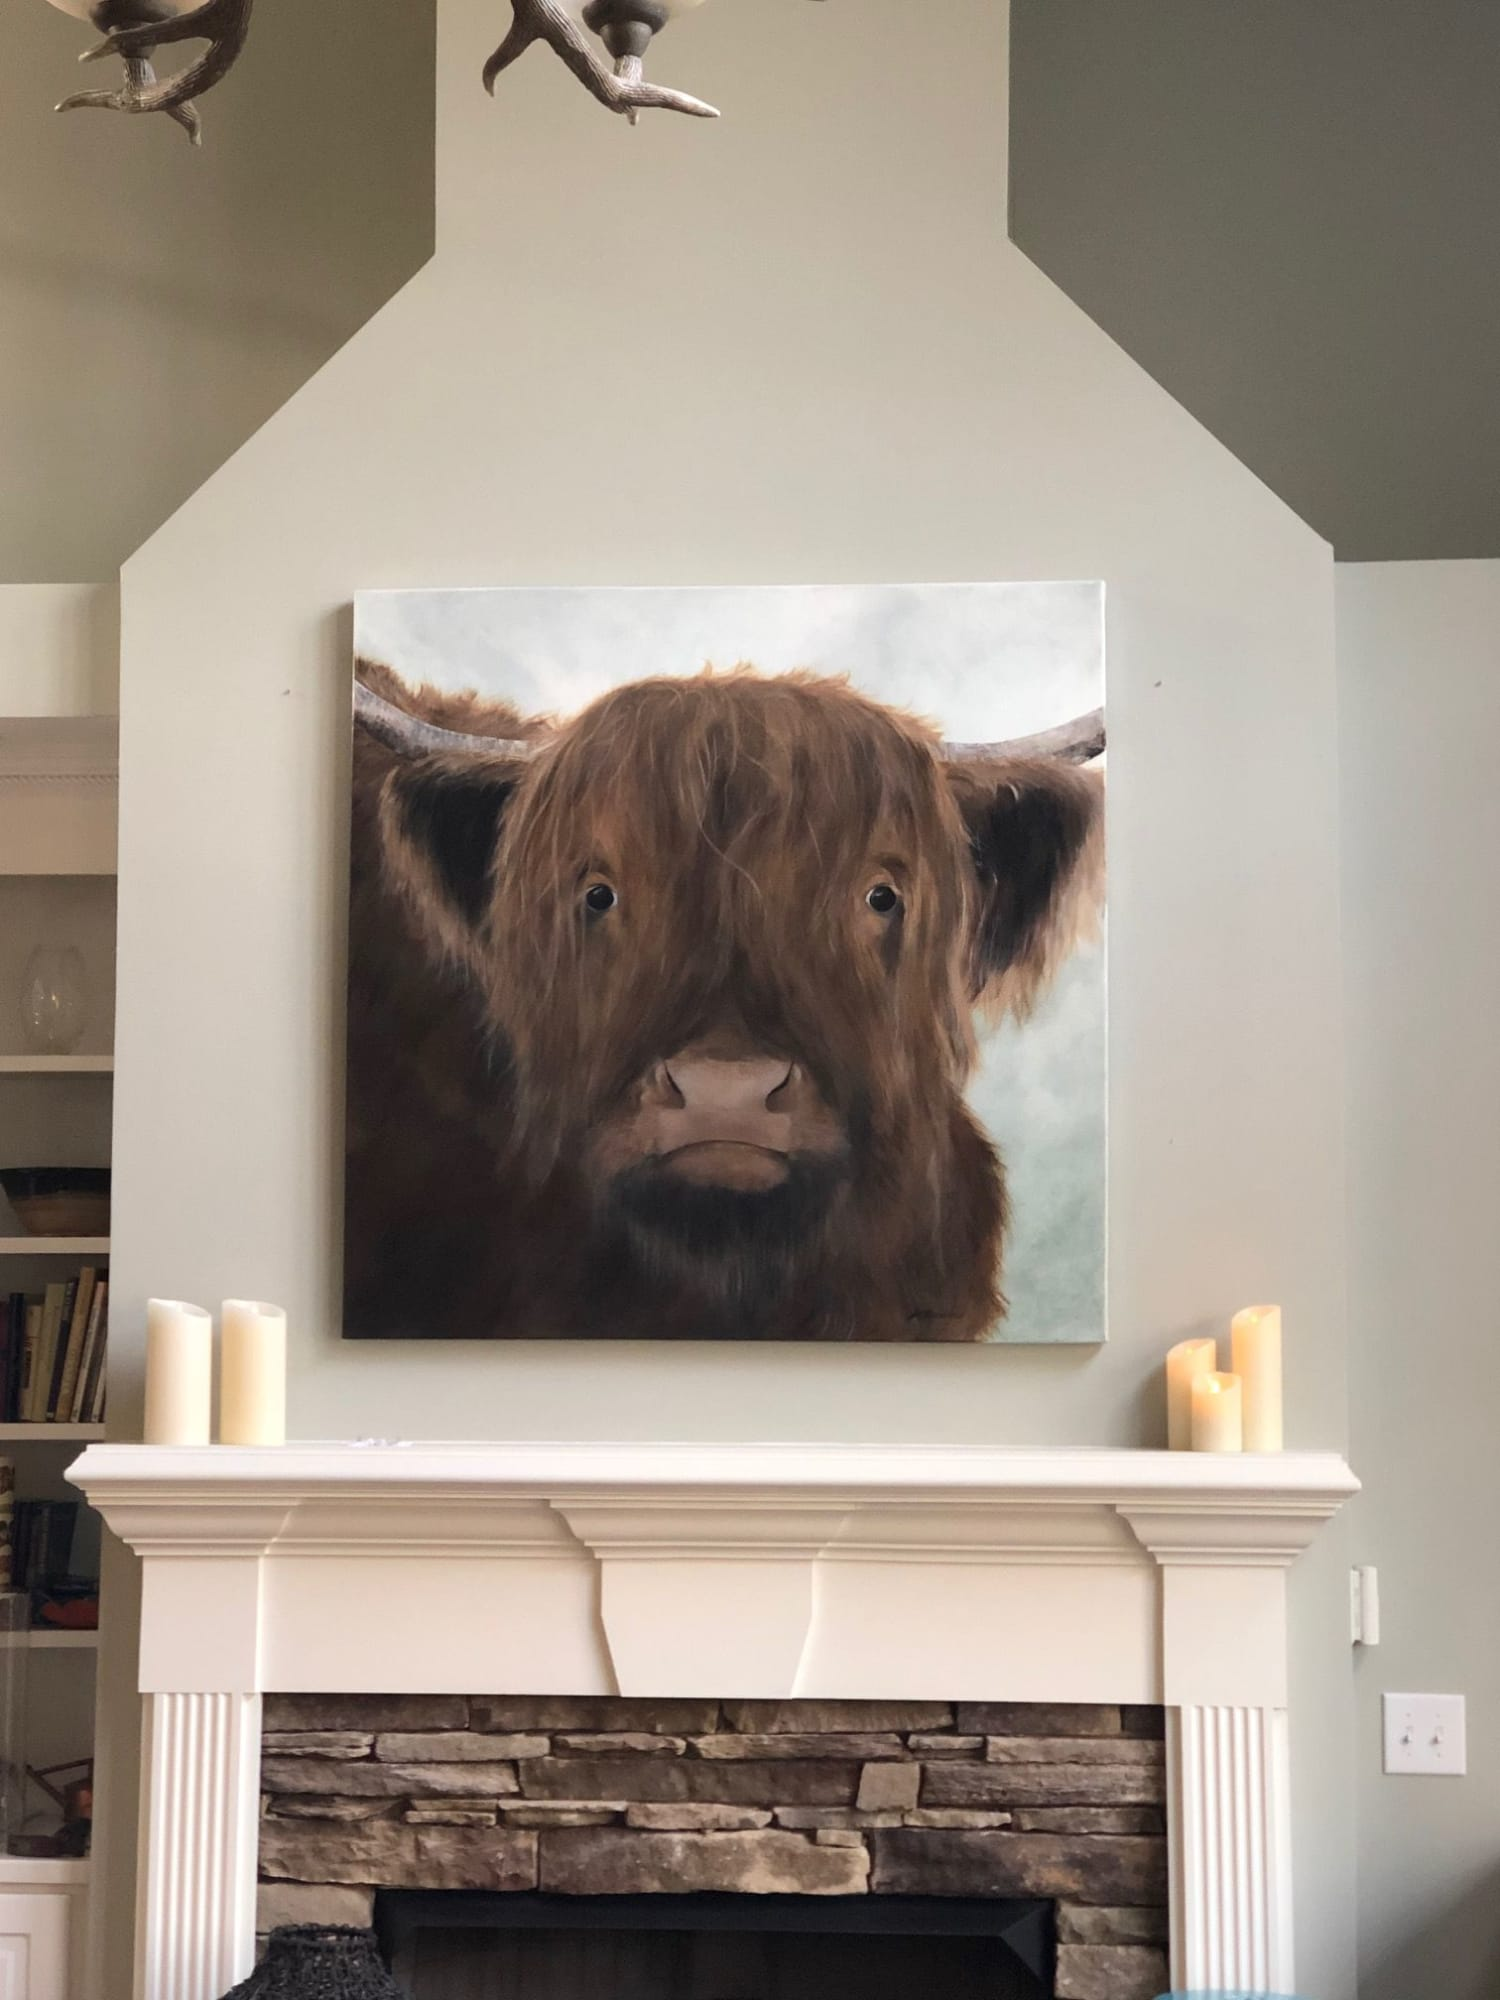 Brown Bull Staring Through Canvas with misty Background